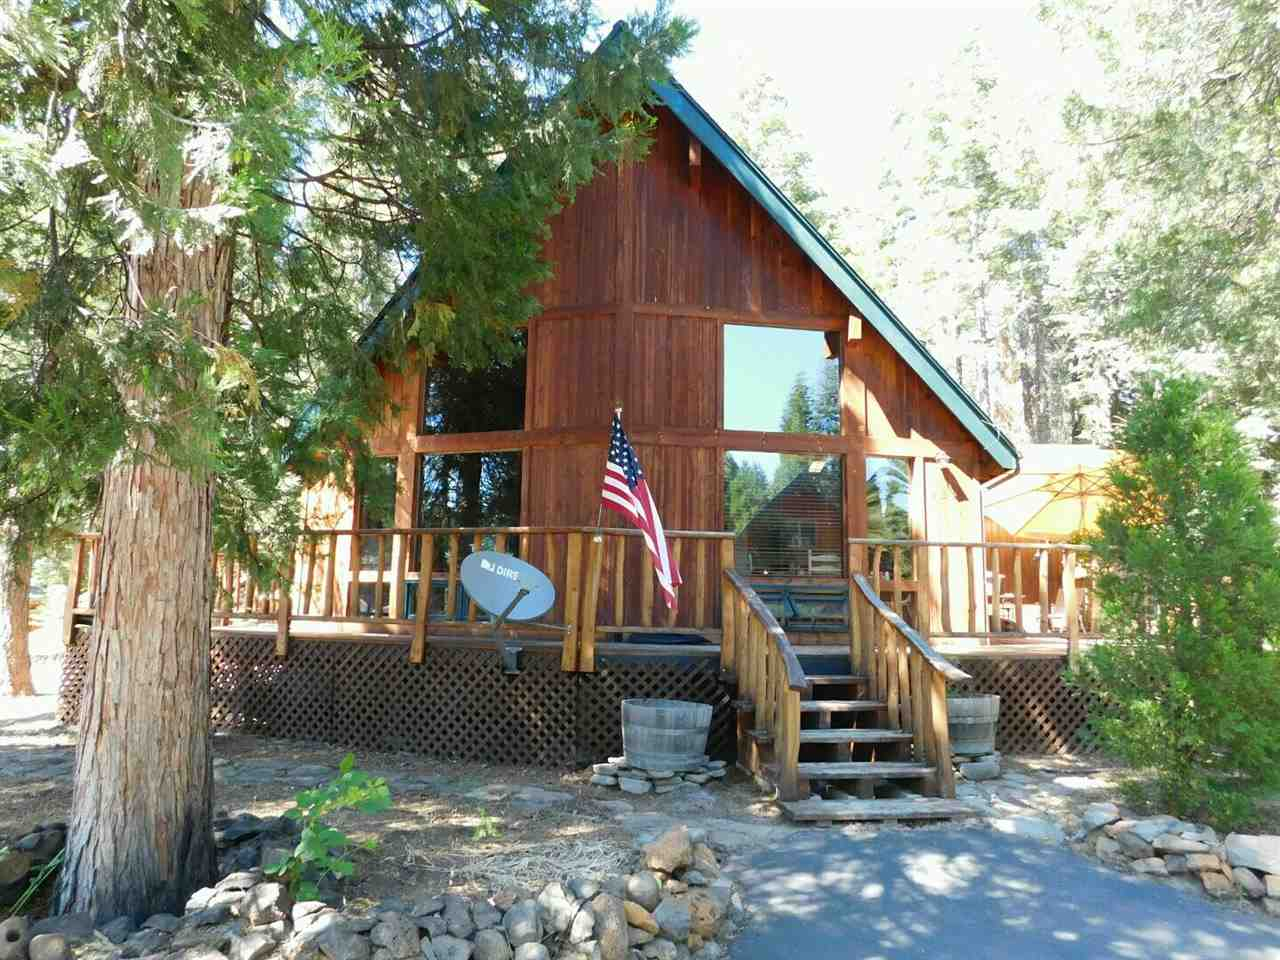 Single Family Home for Active at 3226 Woodlake Drive 3226 Woodlake Drive Lake Almanor, California 96137 United States